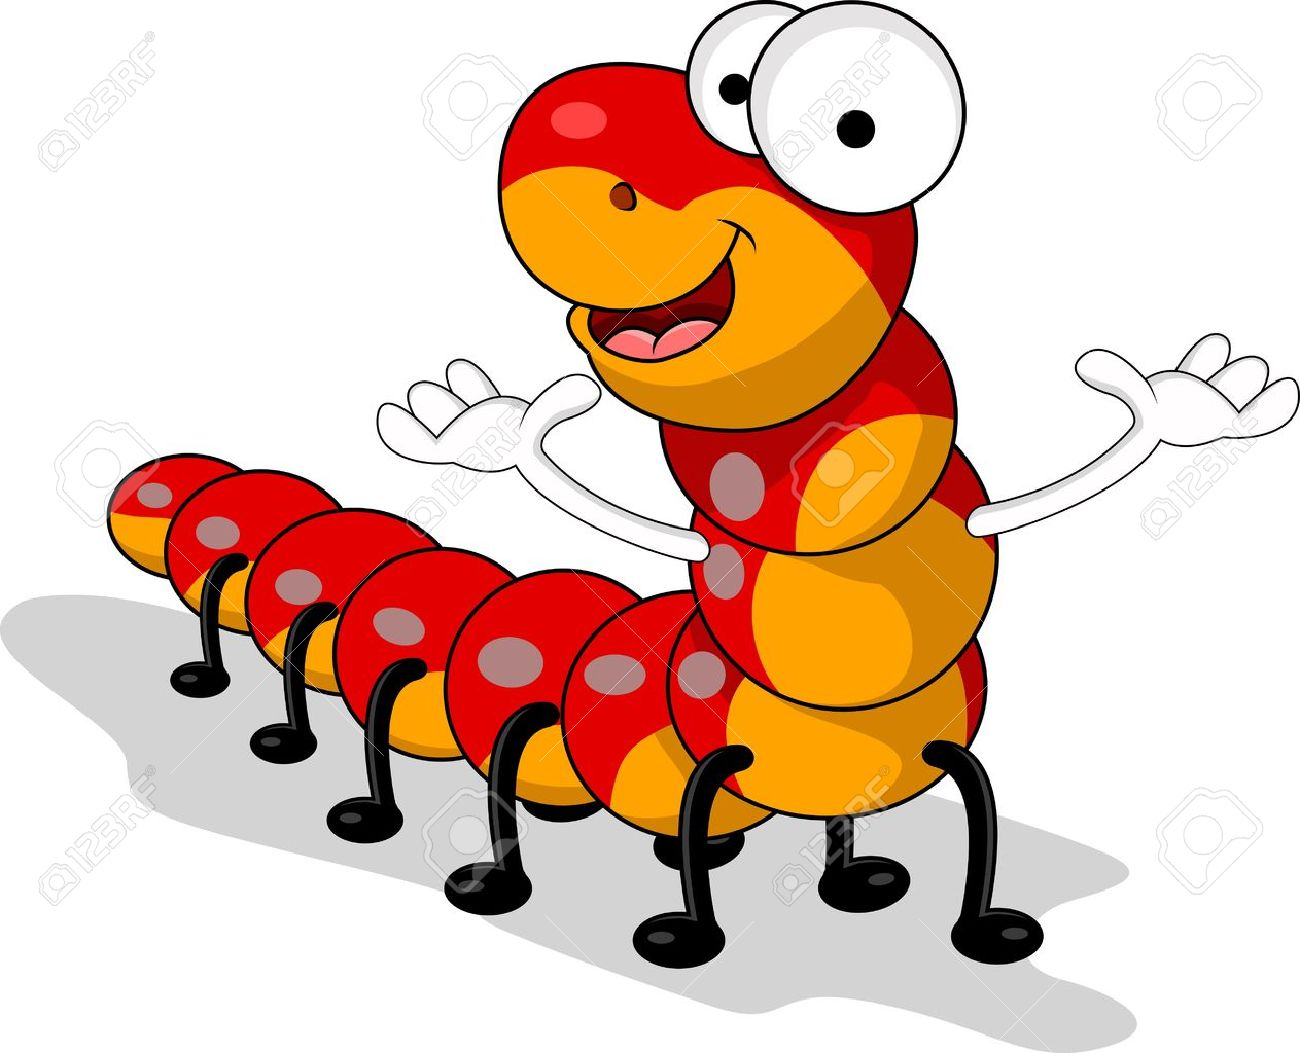 Red Worm Cartoon Royalty Free Cliparts Vectors And Stock